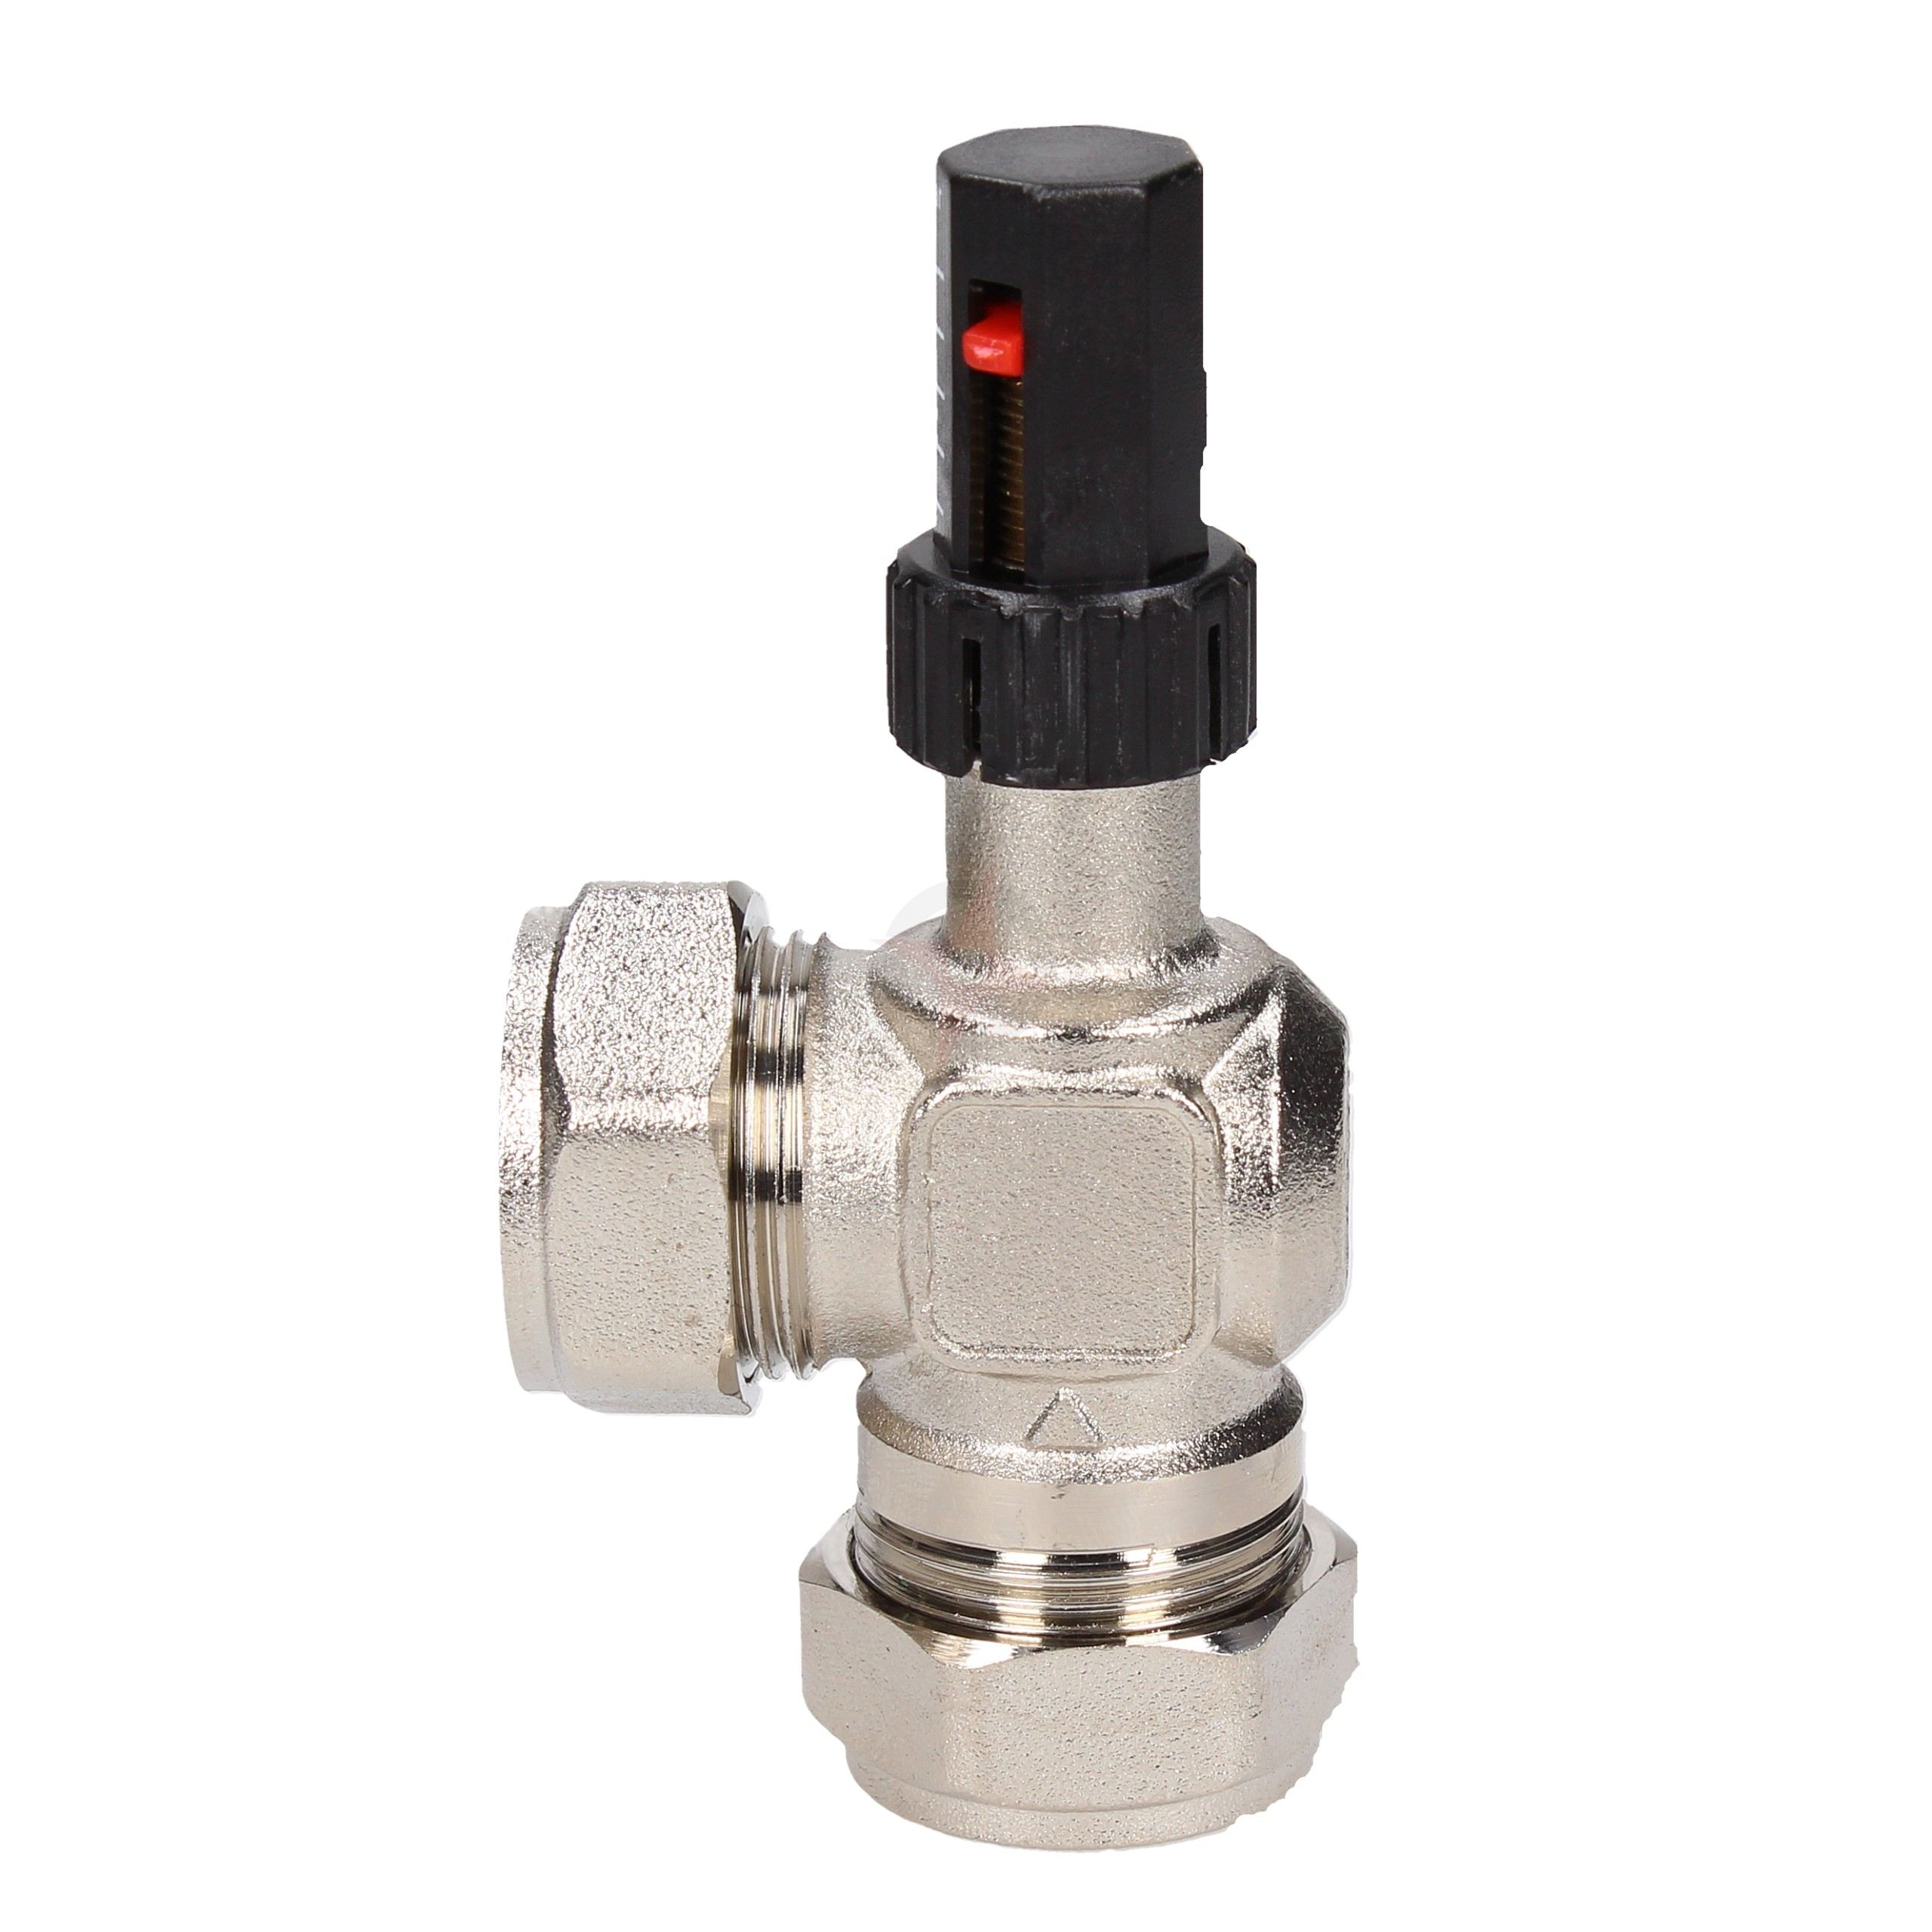 Evolve 22mm Automatic Bypass Valve ABV22